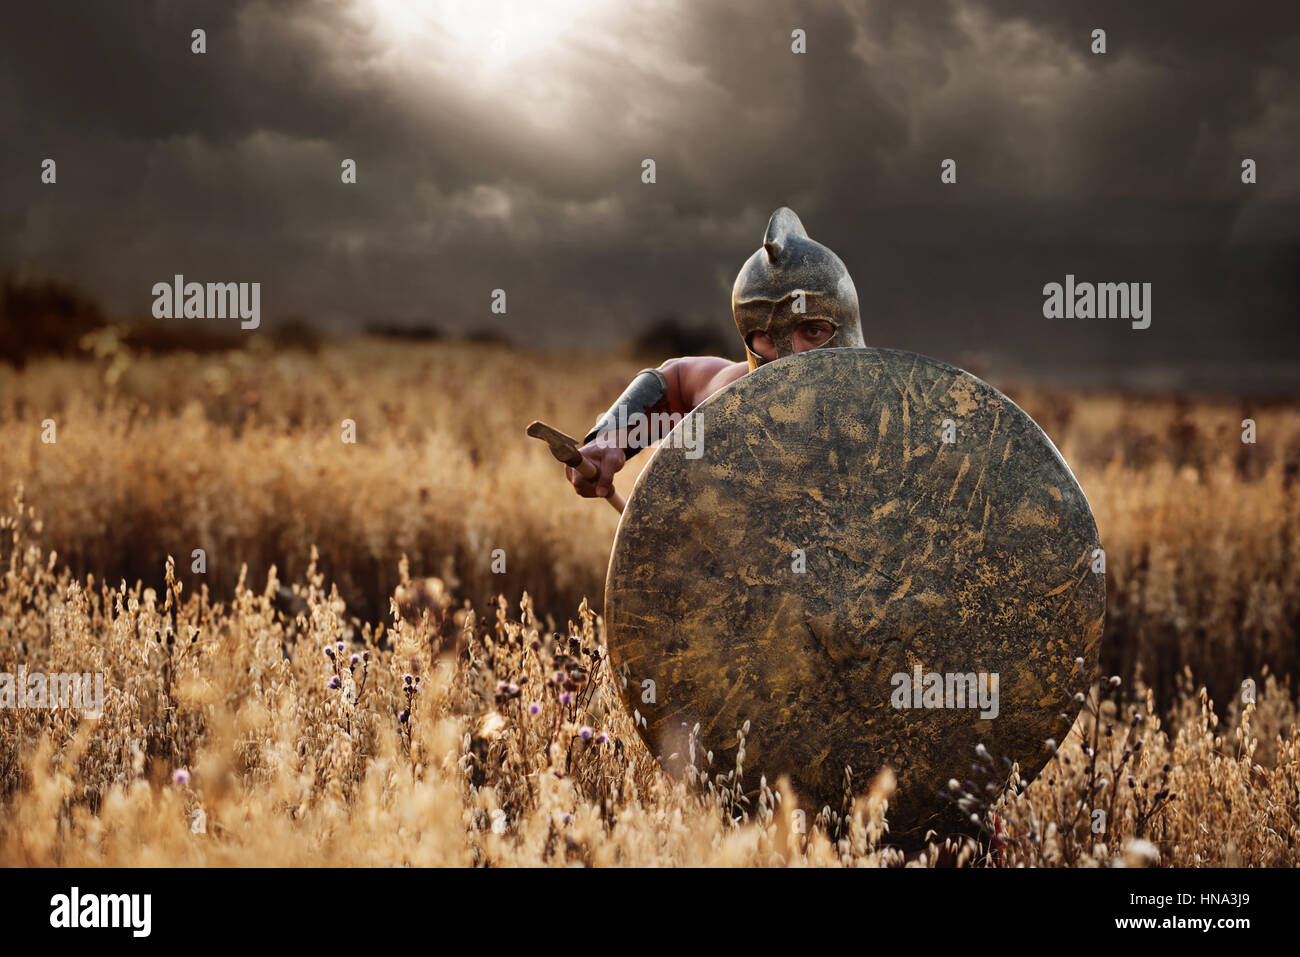 Incognito warrior going forward in attack. - Stock Image